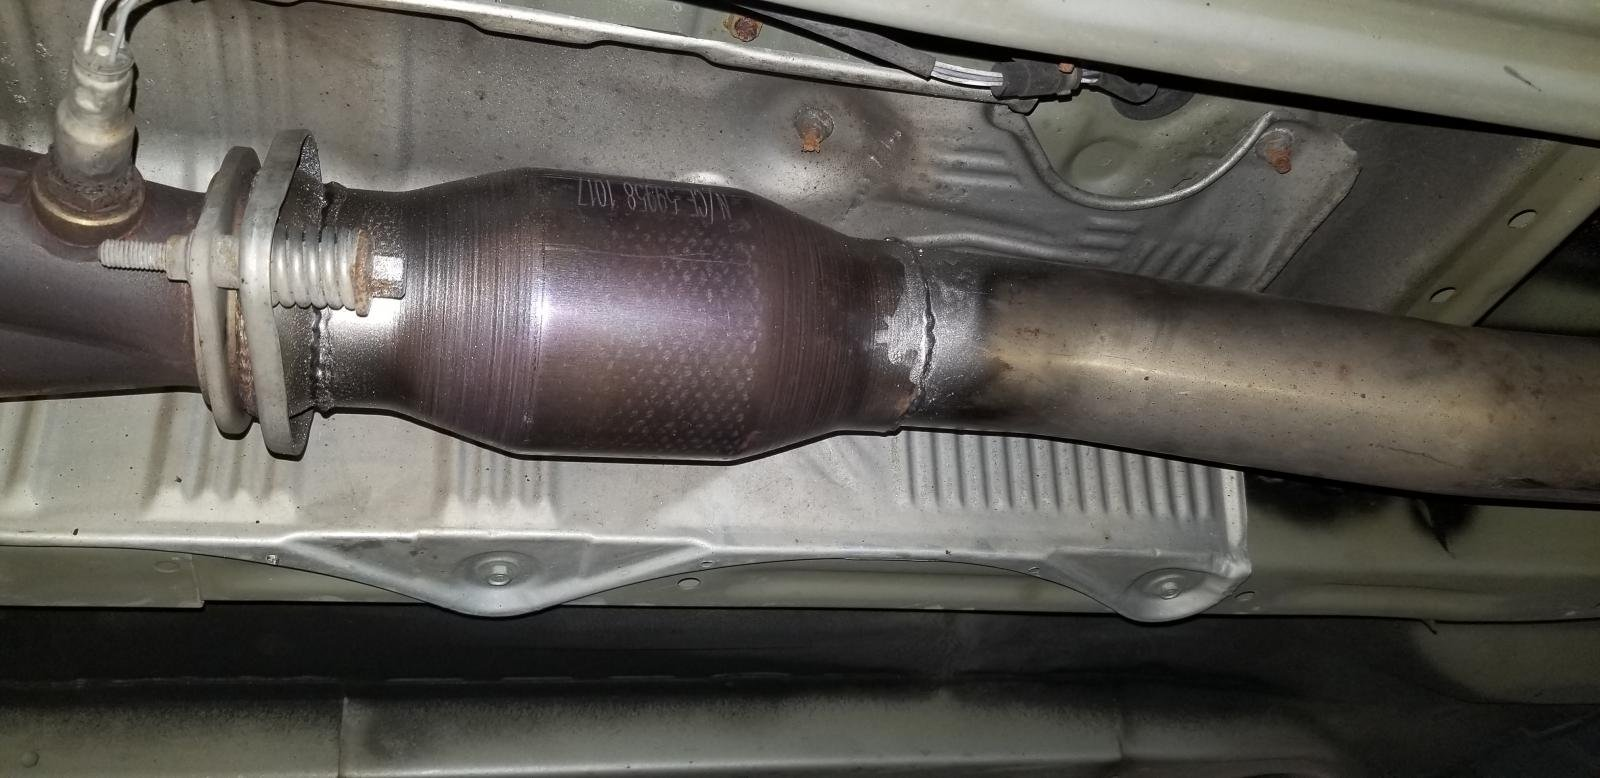 catalytic converter / HFC to use with Invidia Racing Header & Q300-20190629_130651-1-.jpg